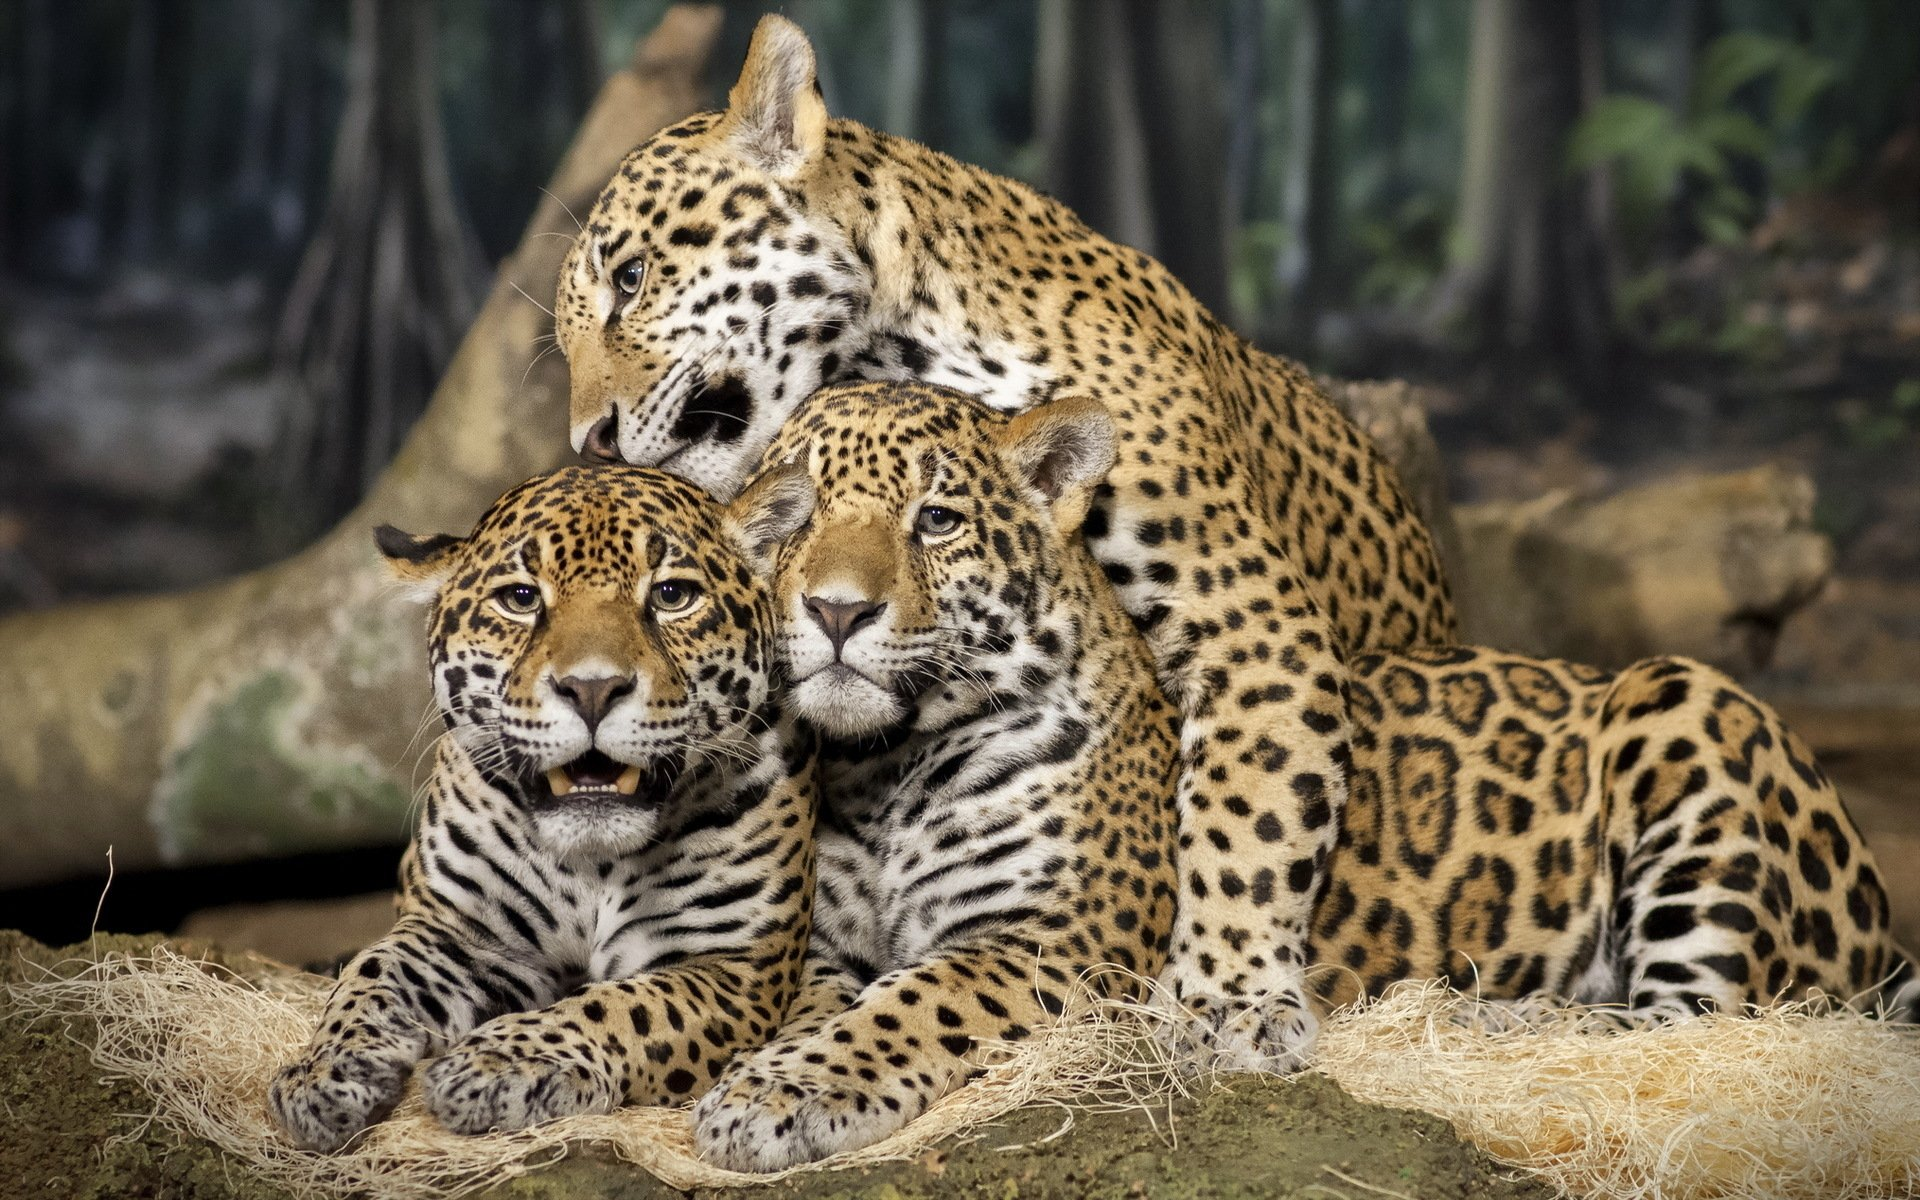 Animals Jaguars Wallpapers Hd Desktop And Mobile: Jaguar Full HD Wallpaper And Hintergrund